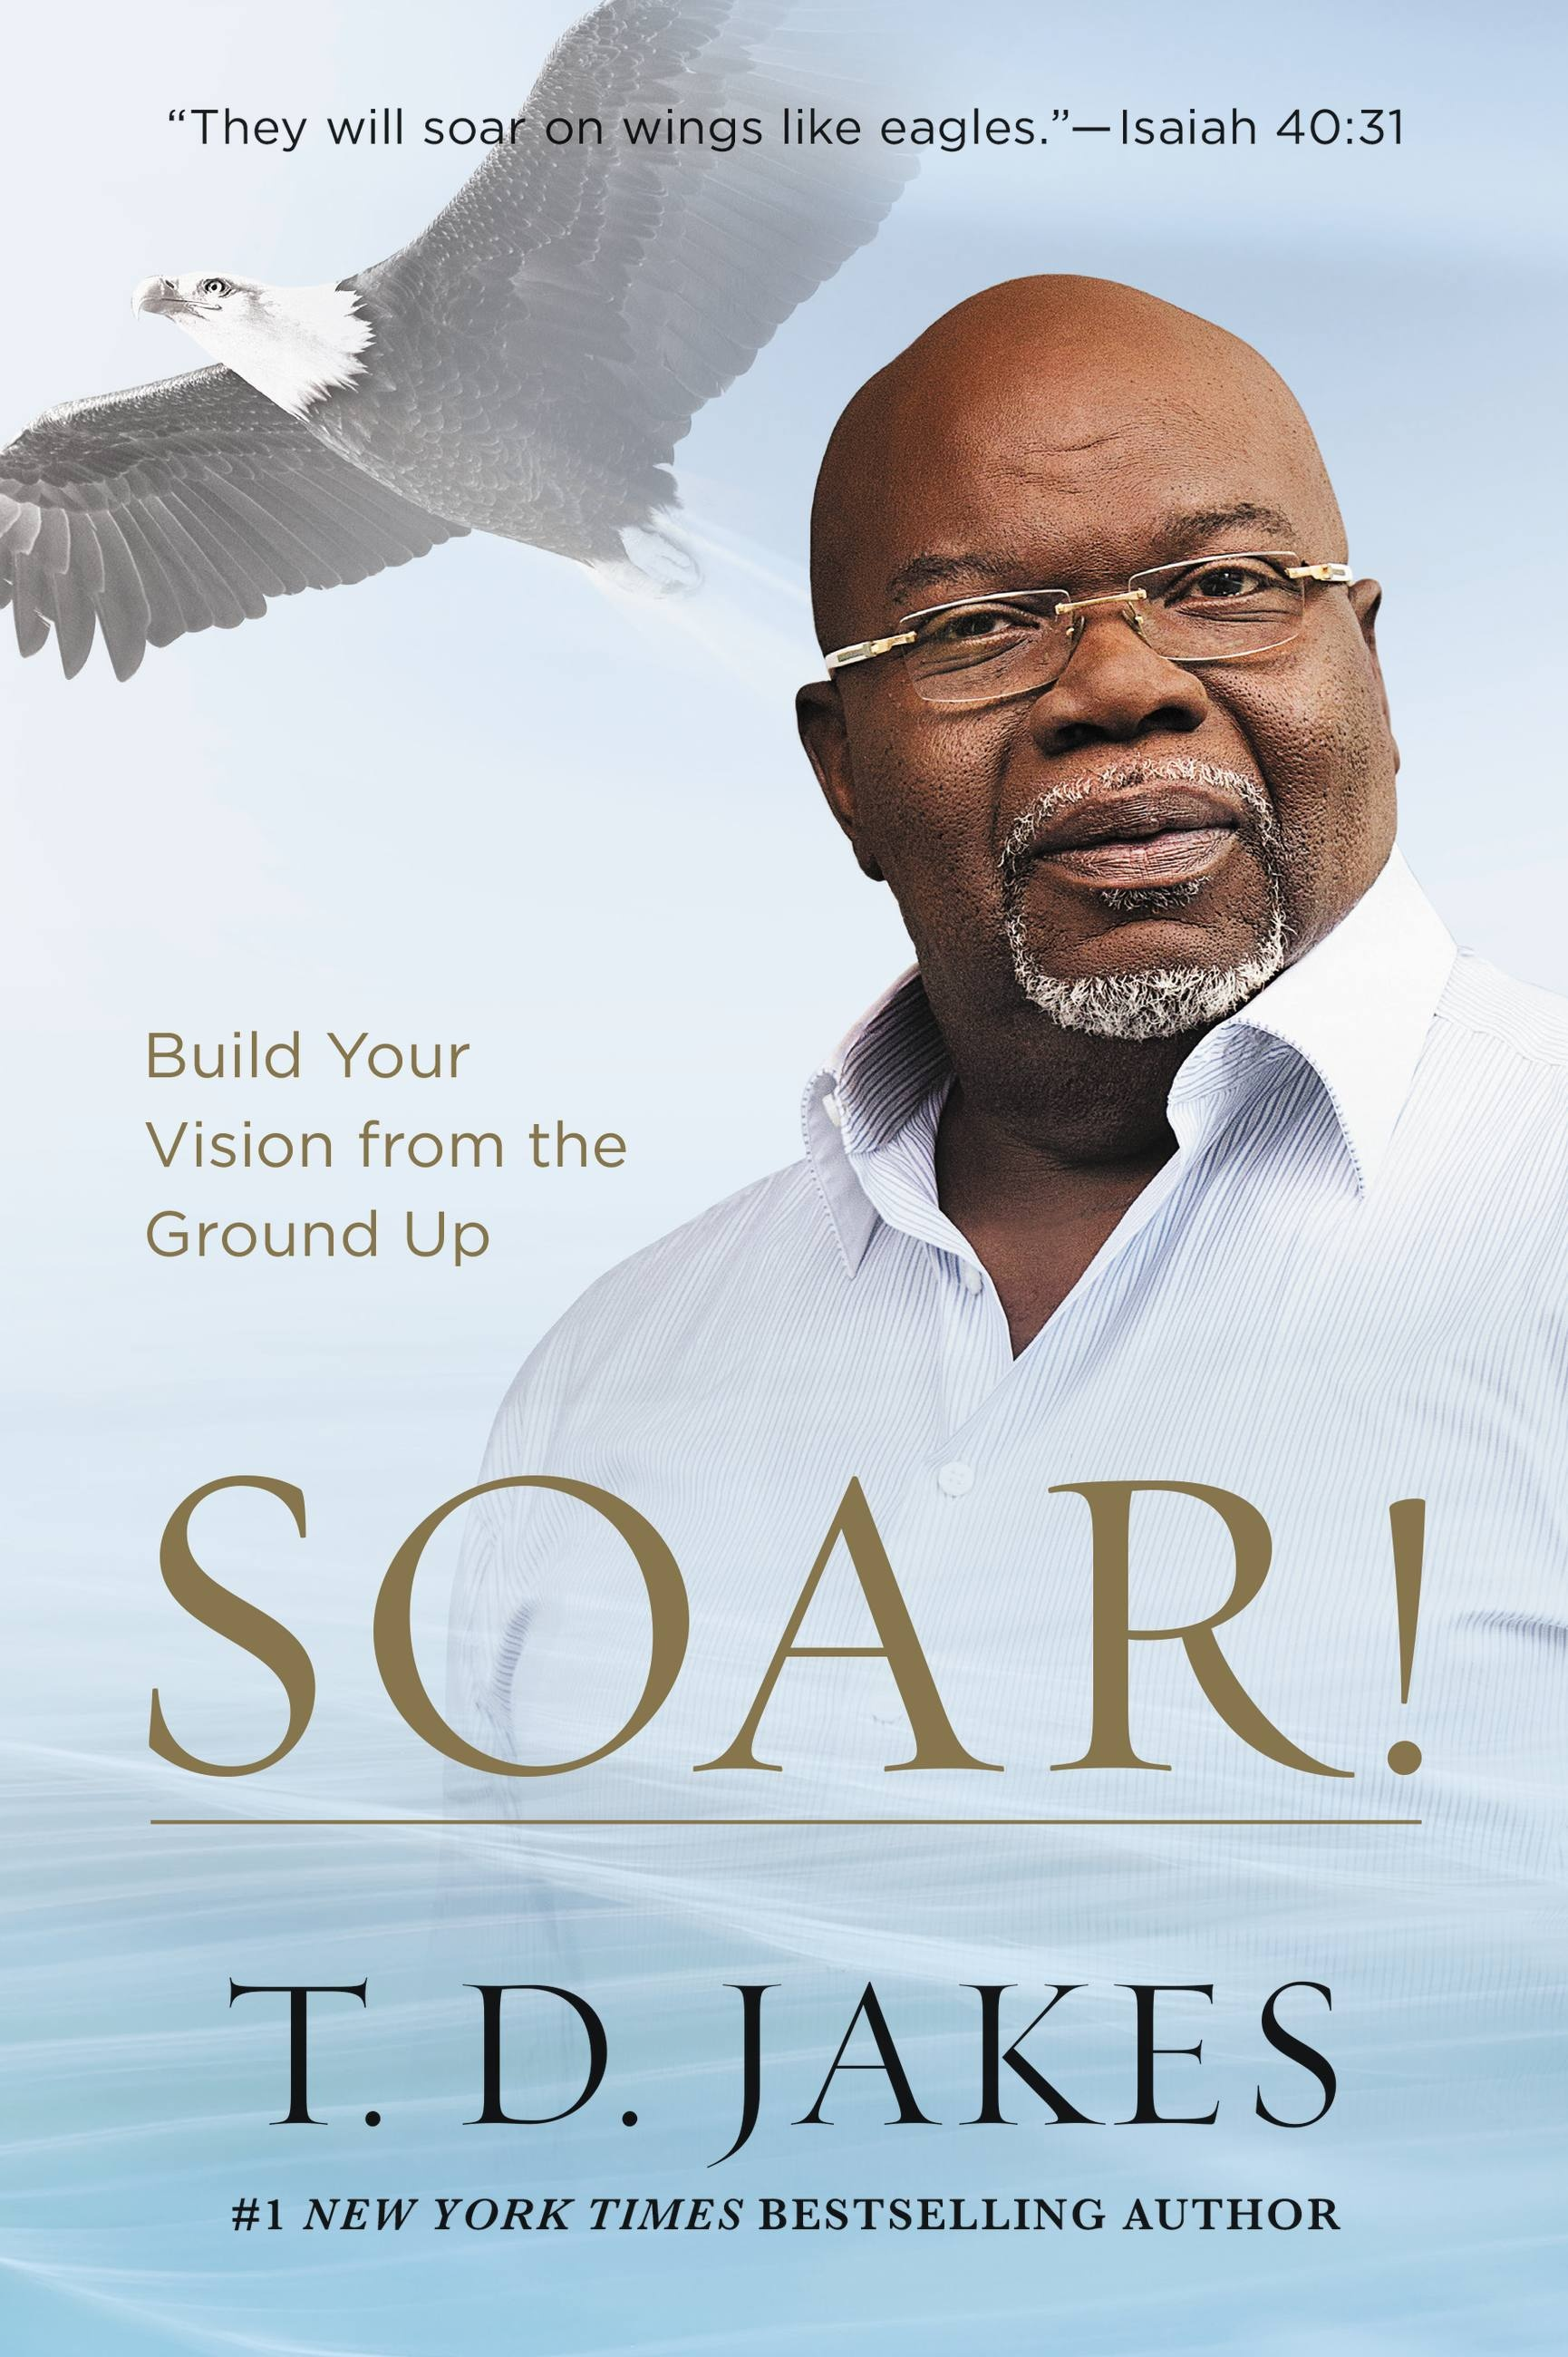 Soar - Bishop TD Jakes